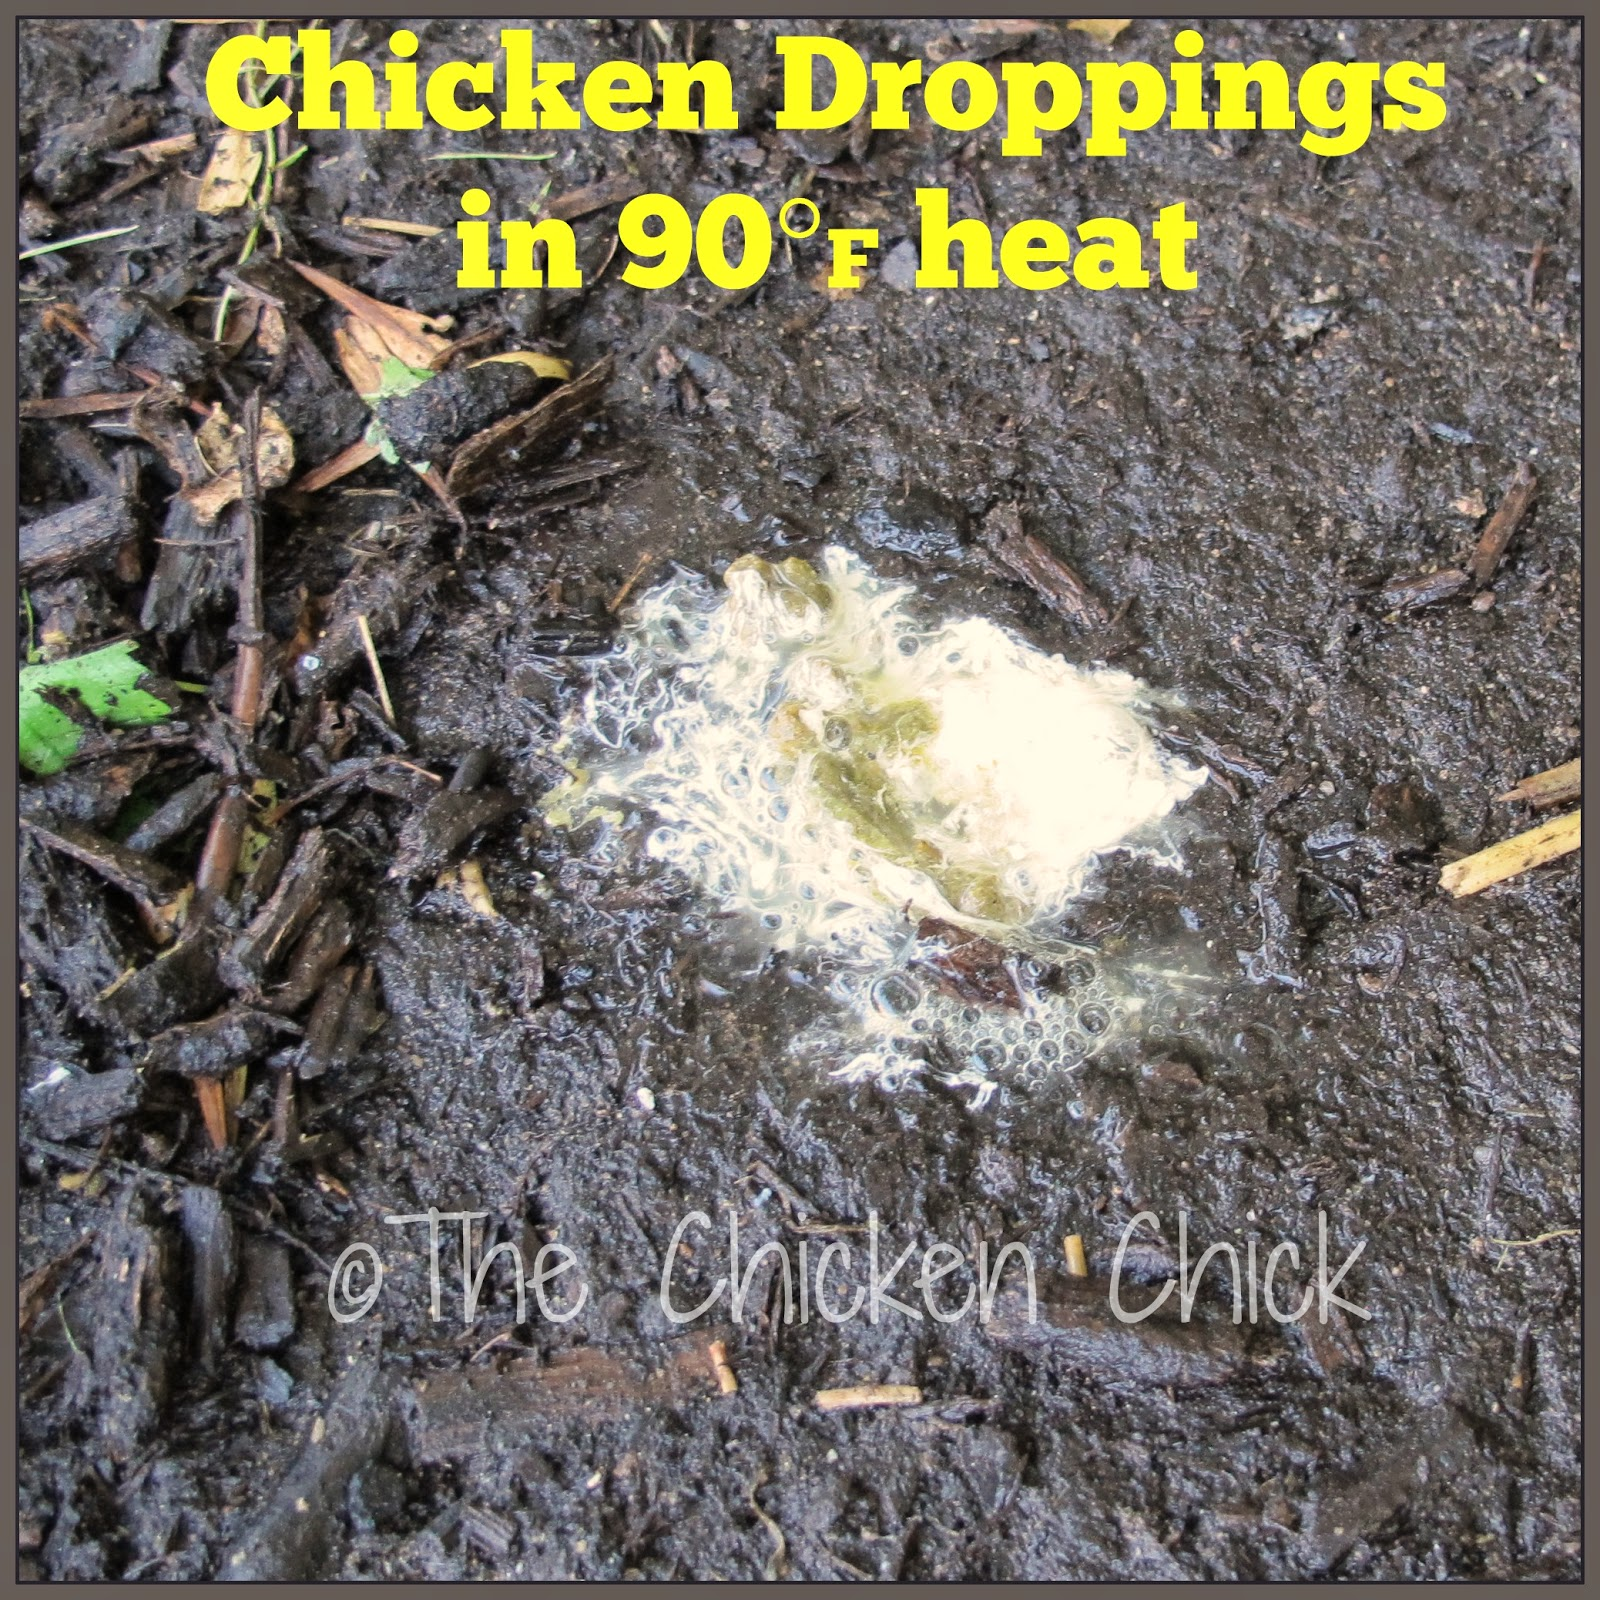 Normal chicken poop is watery in high heat due to increased water intake.